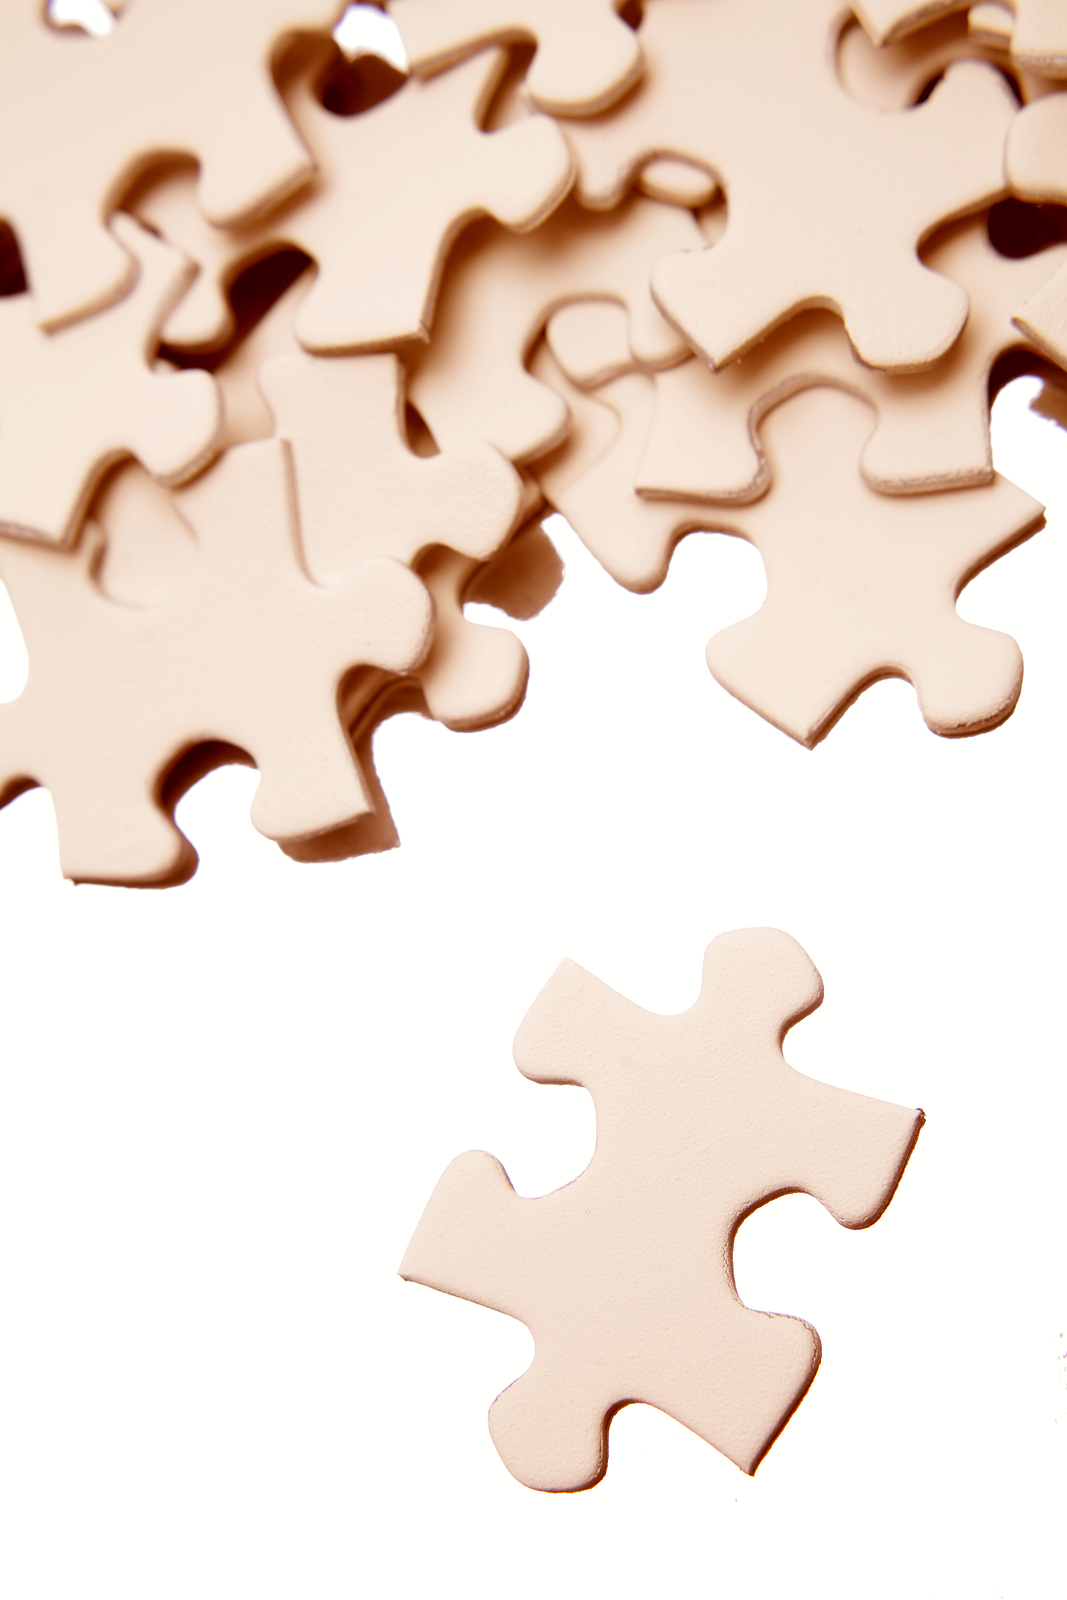 Able jigsaw puzzles